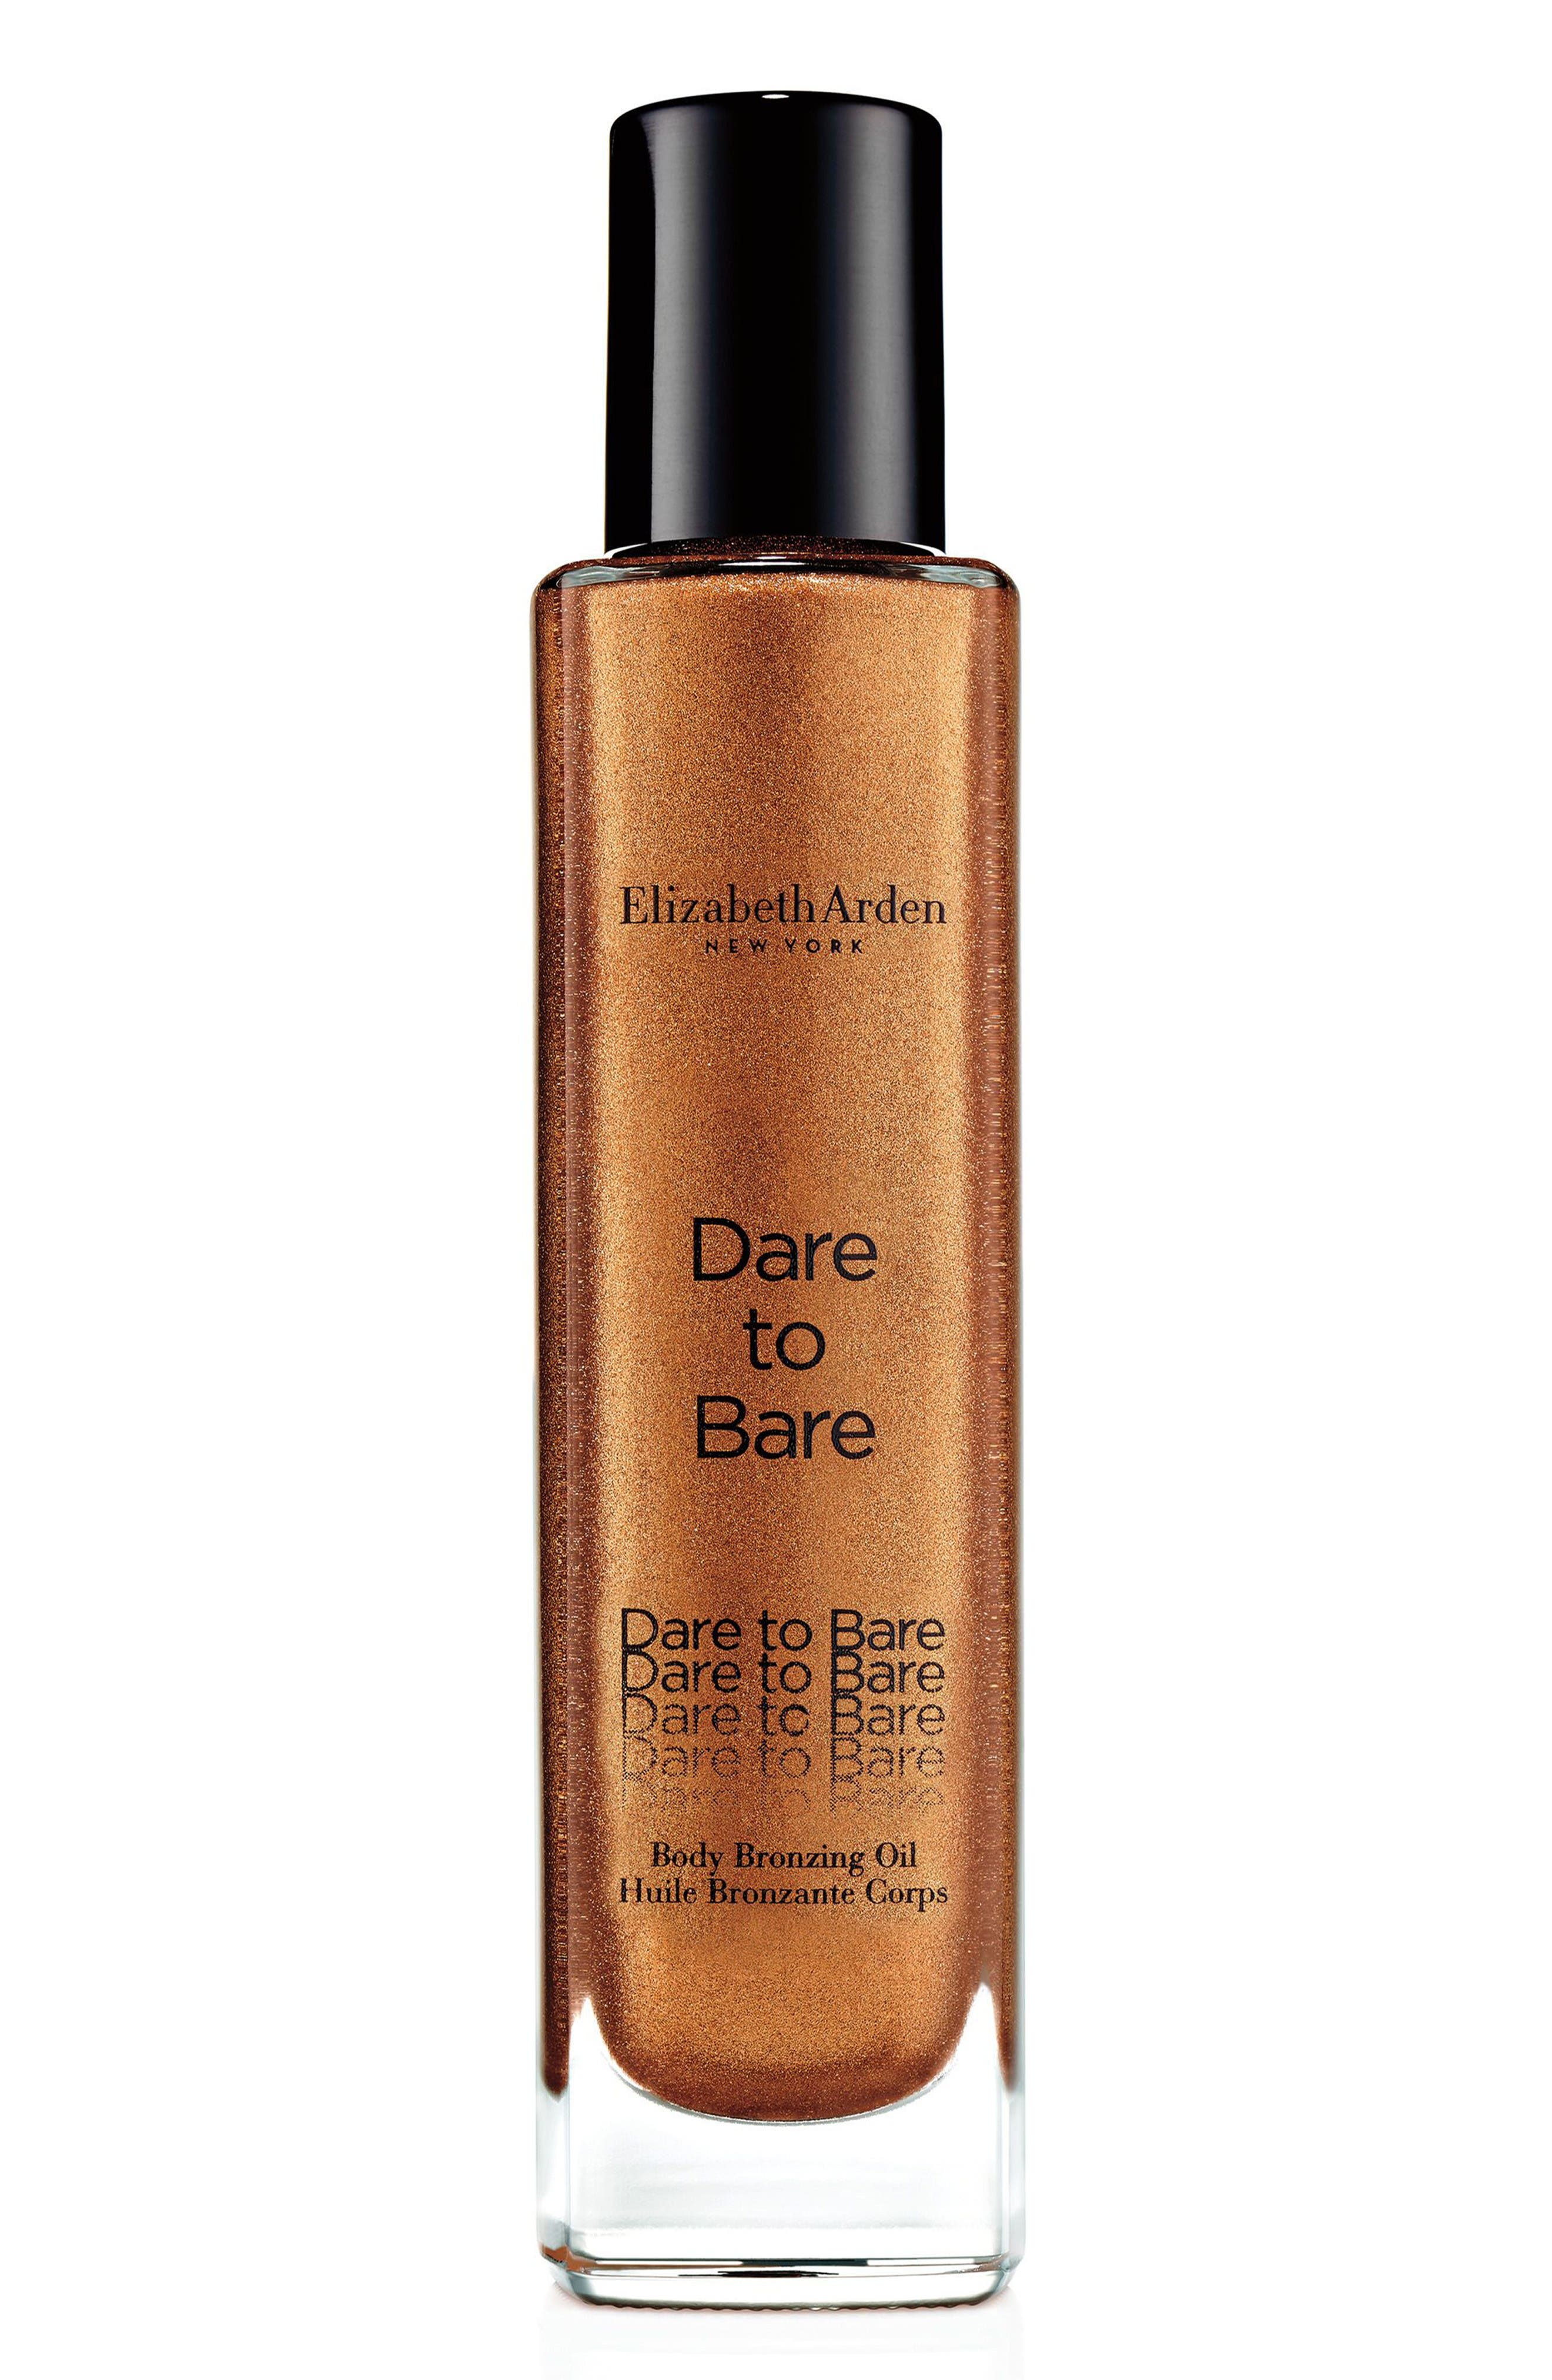 Elizabeth Arden Dare to Bare Body Bronzing Oil (Limited Edition)